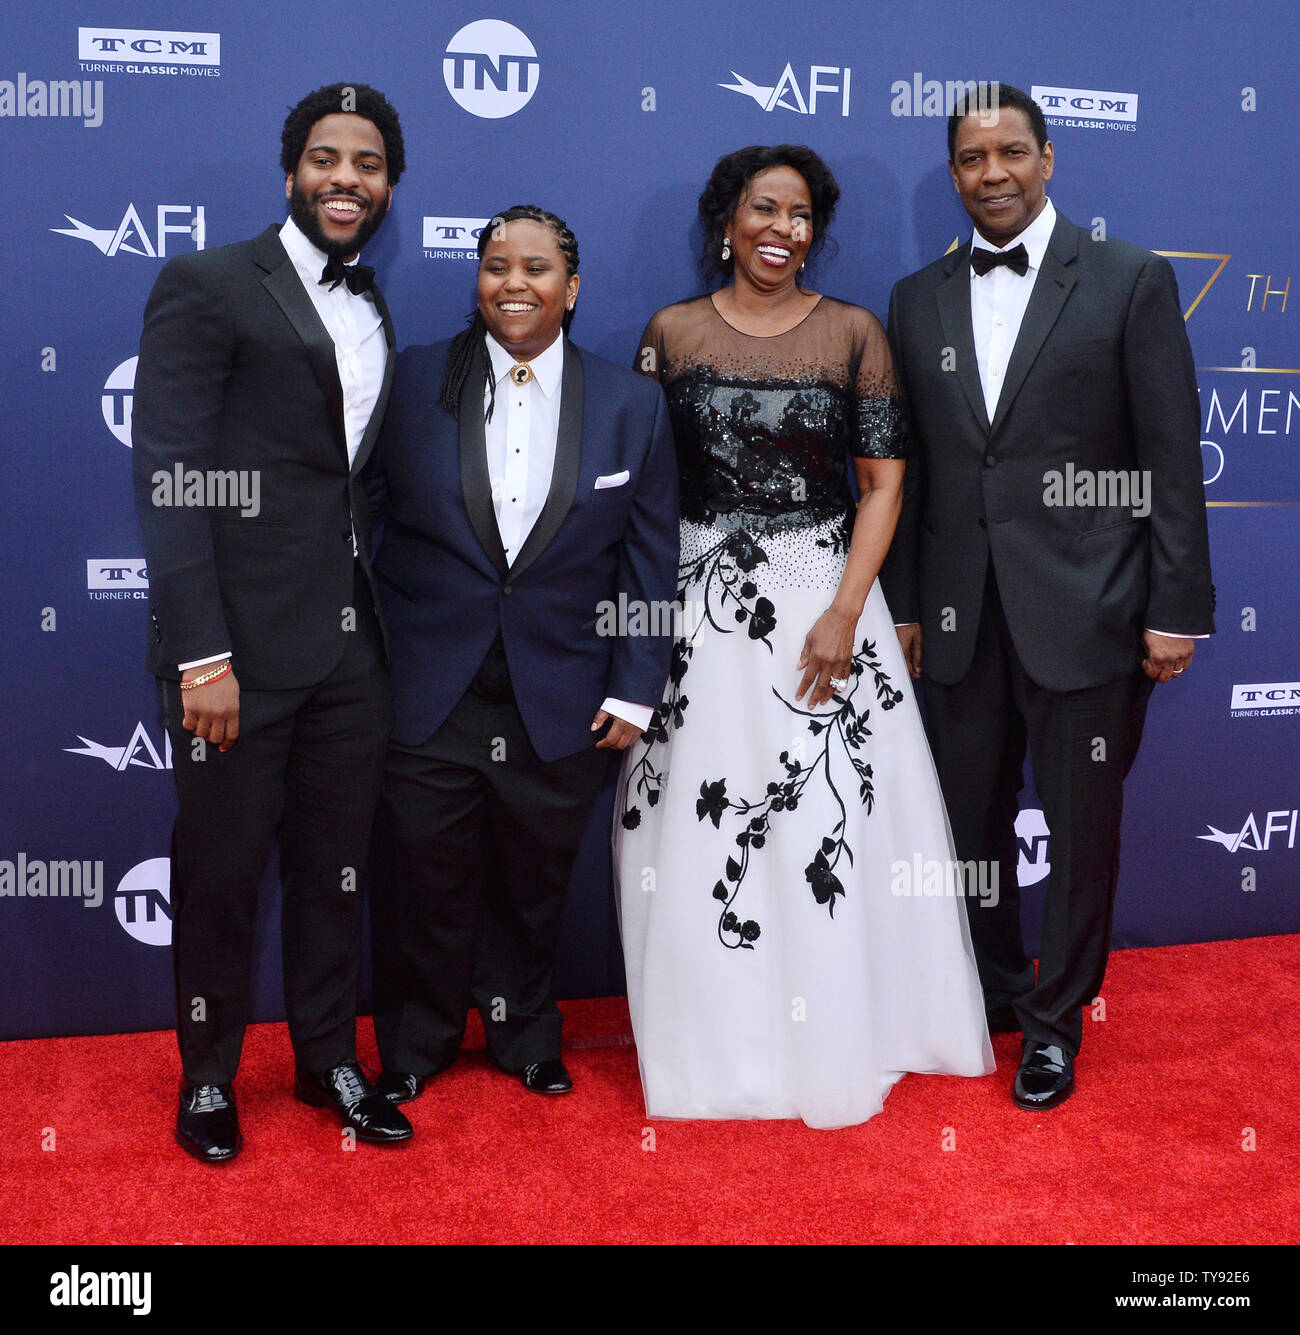 Honoree Denzel Washington (R) attends the 47th annual AFI Life Achievement Award tribute gala with his son Malcolm Washington, daughter Katia Washington and wife Pauletta Washington (L-R) at the Dolby Theatre in the Hollywood section of Los Angeles on June 6, 2019.   Photo by Jim Ruymen/UPI Stock Photo